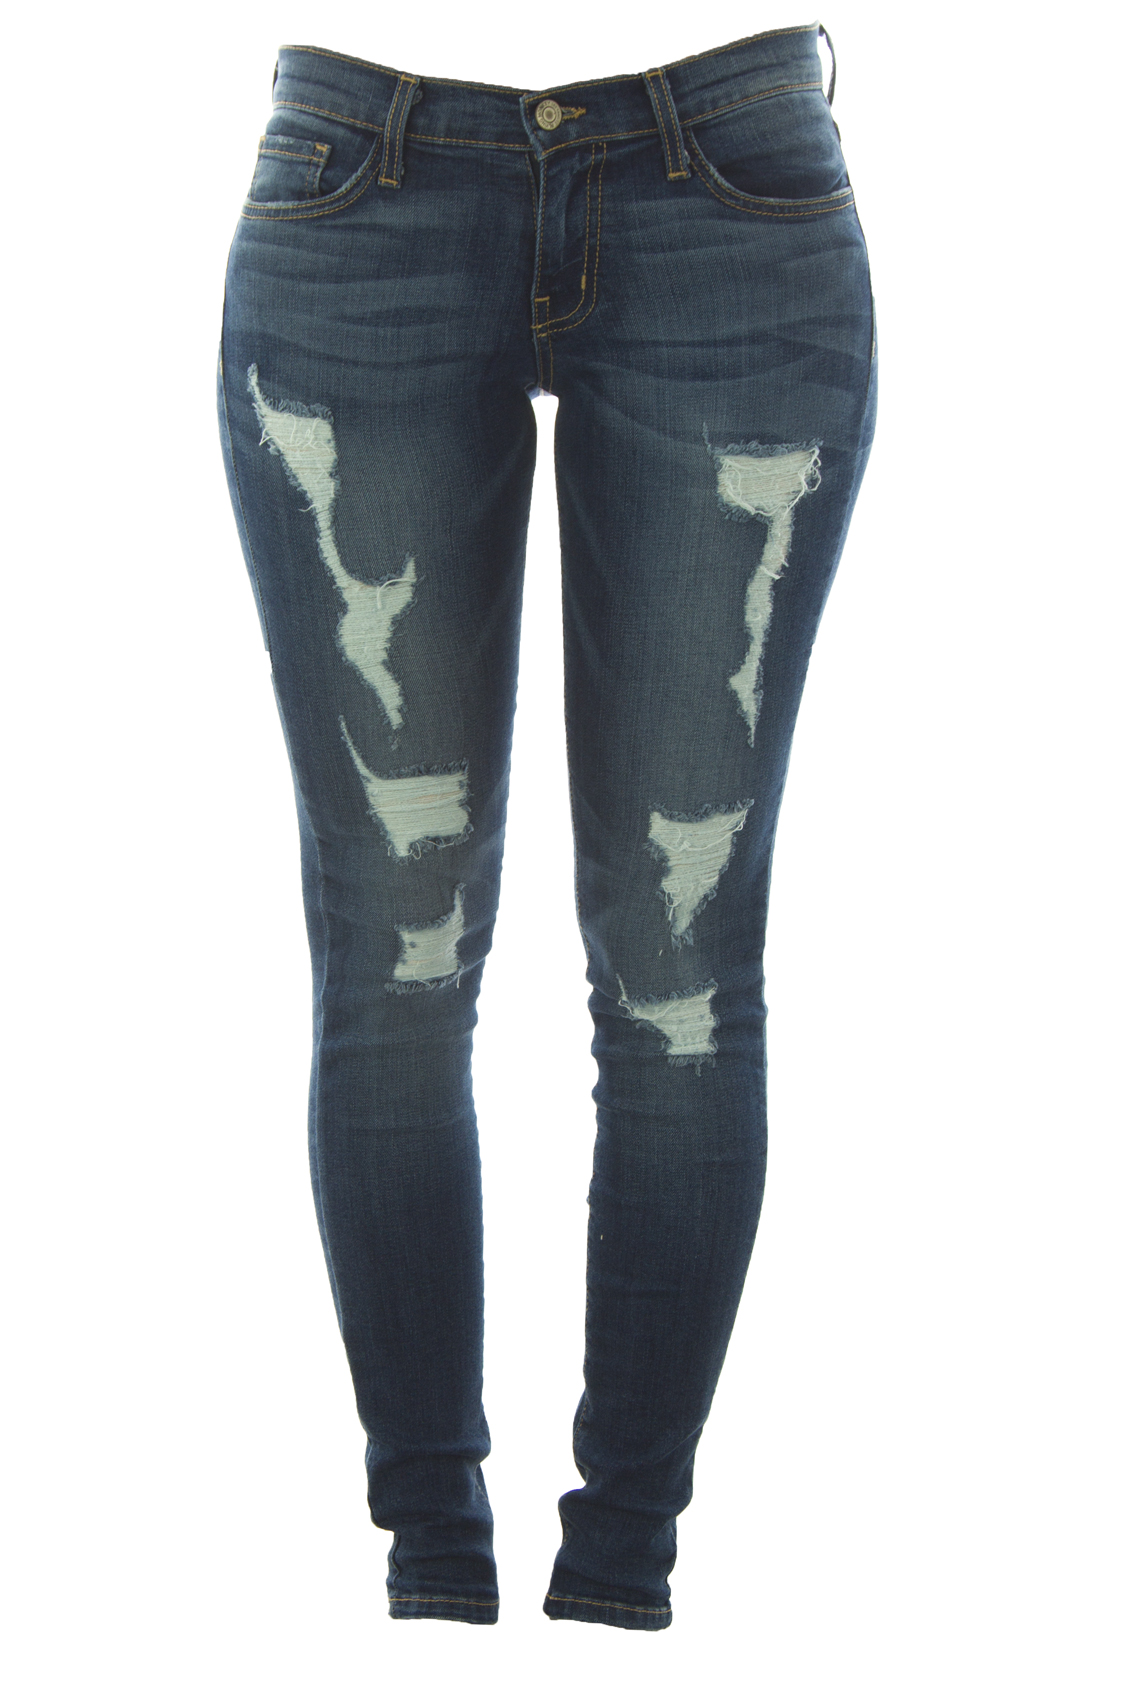 Flying Monkey Distressed Denim Skinny Jeans